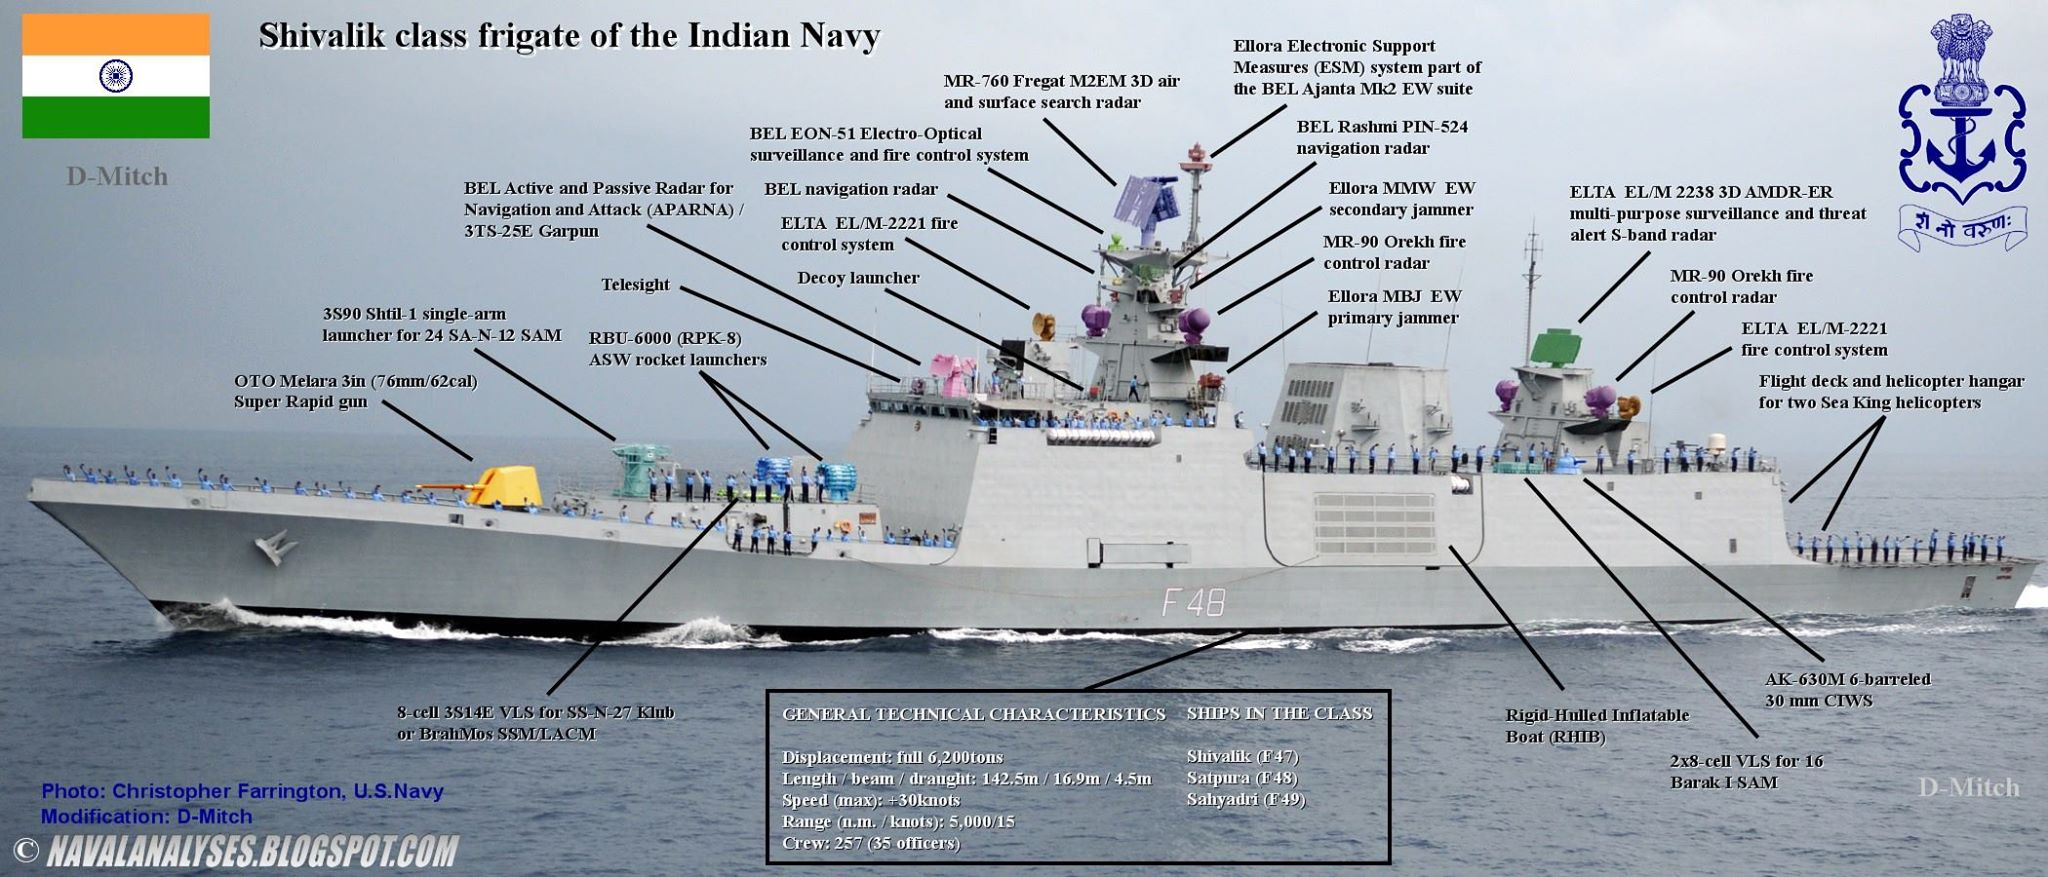 Top 10 Most Powerful Frigates In The World Defencyclopedia 2013 F 150 Wiring Diagram Rear Sonar Click On Image For Full Resolution Version